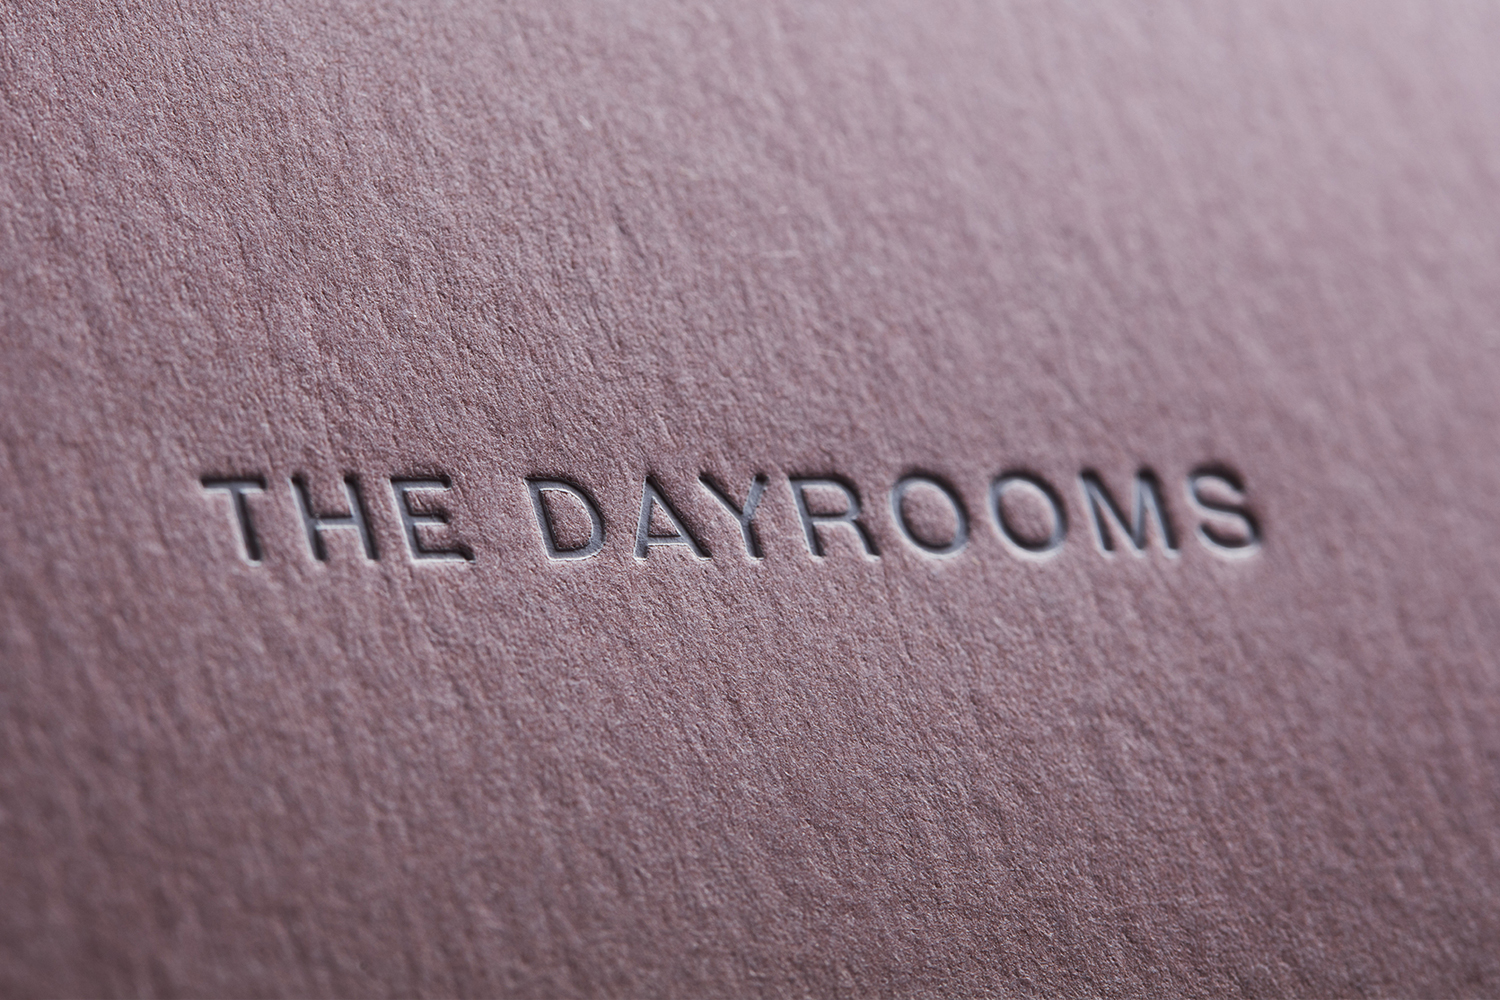 Brand identity and print by Two Times Elliott for Australian fashion boutique in London The Dayrooms